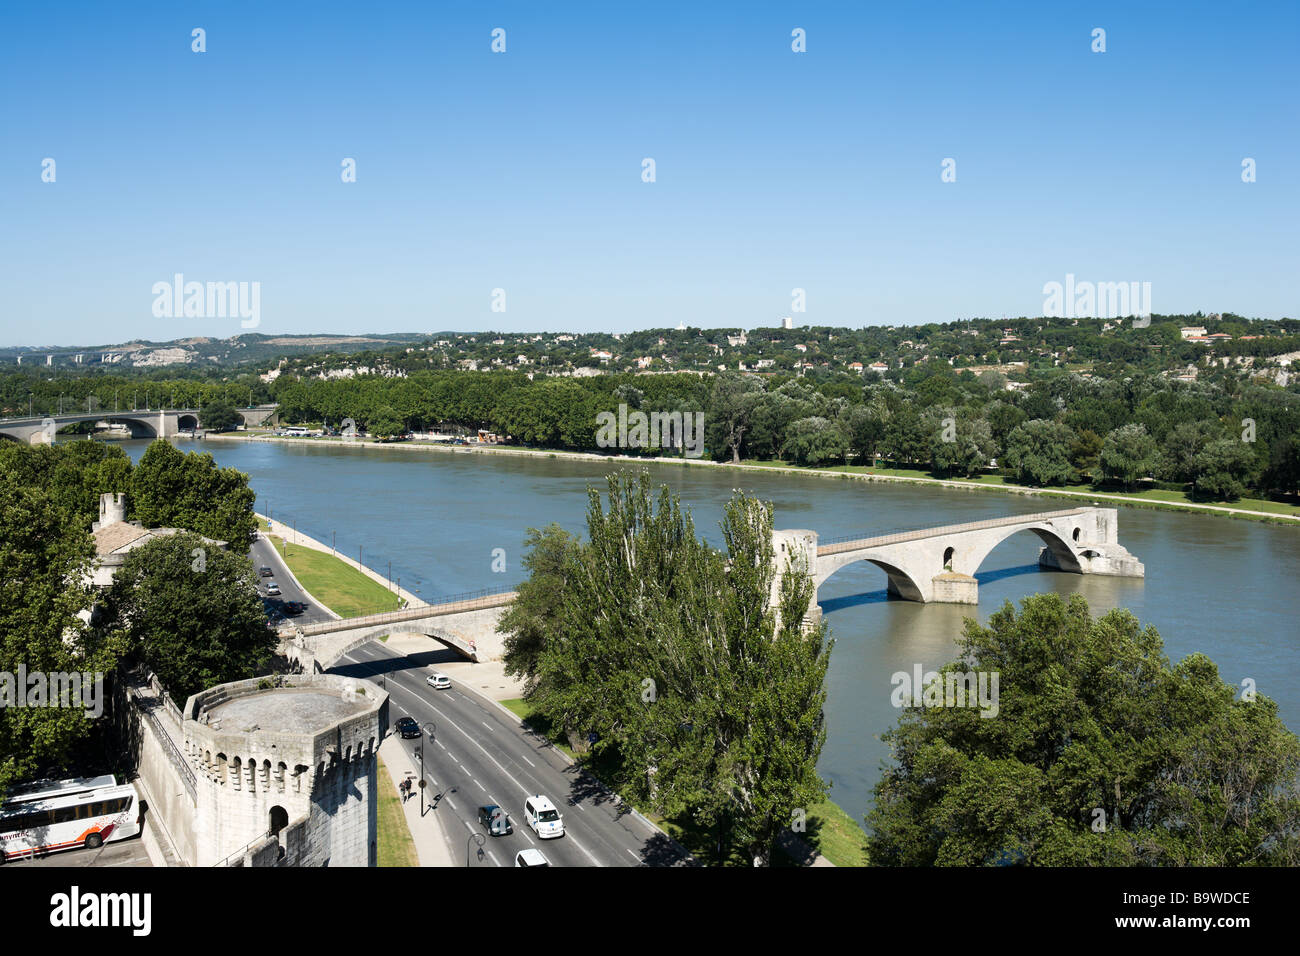 Pont Saint Benezet (the famous Pont d'Avignon) on the River Rhone seen from the Rocher des Doms park, Avignon, - Stock Image